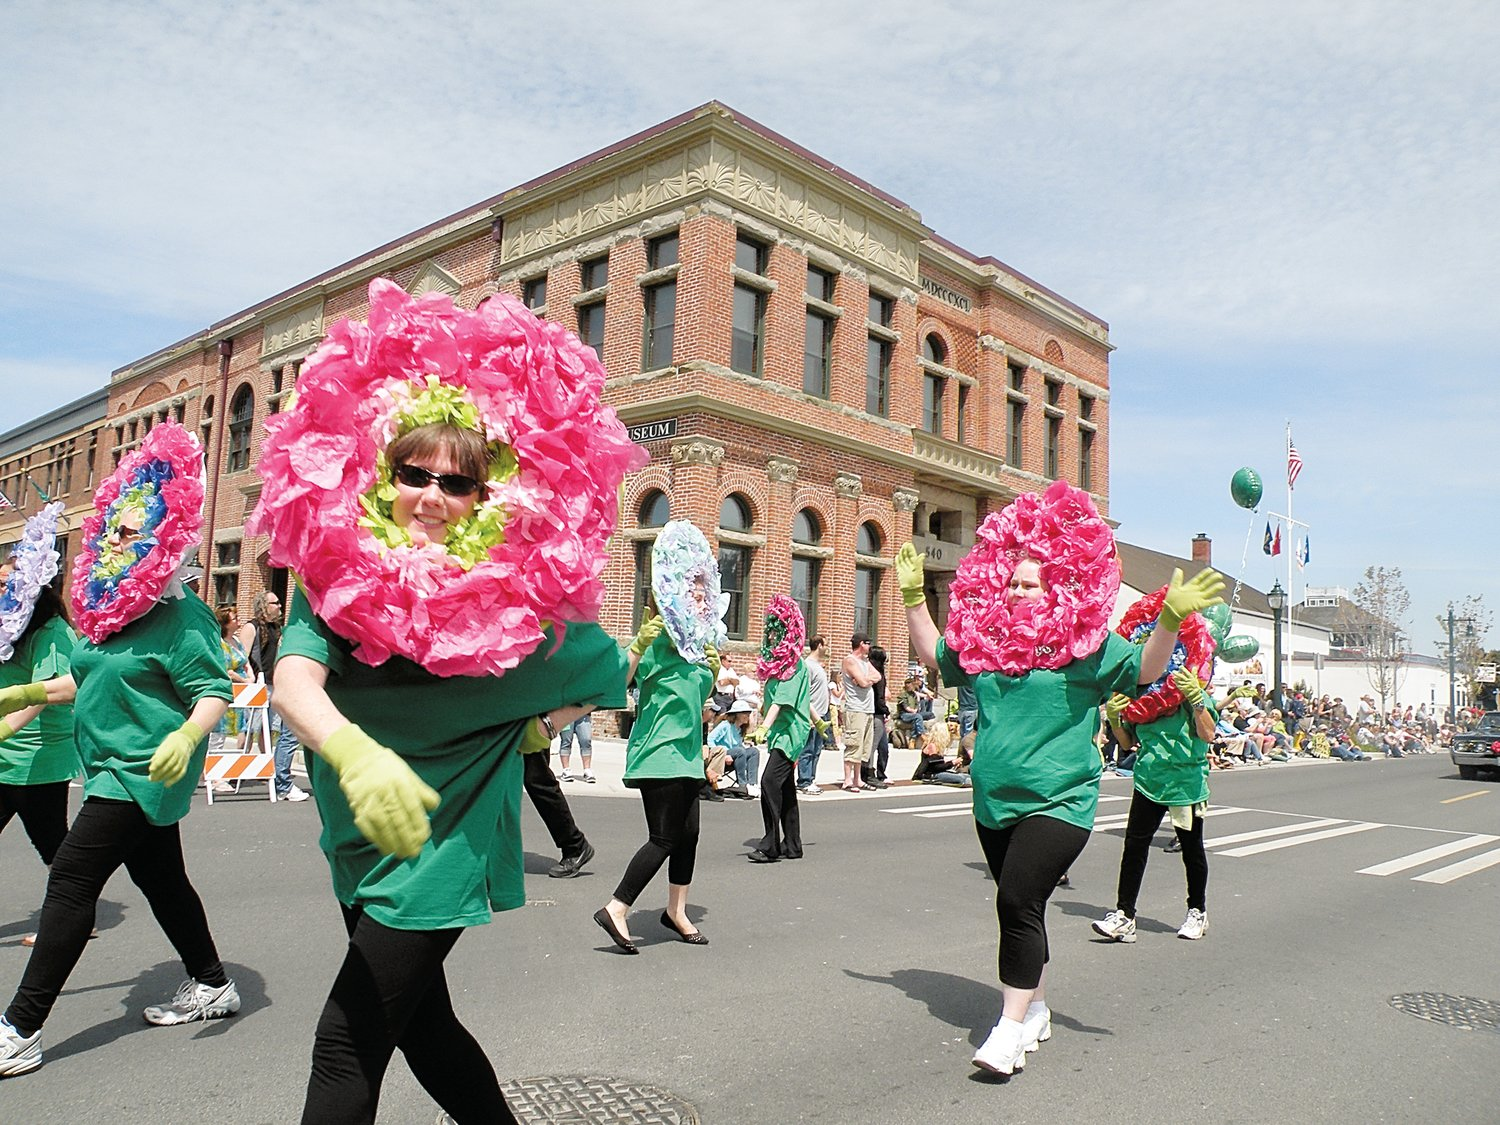 """Flowers"" dance down the parade route in 2012."